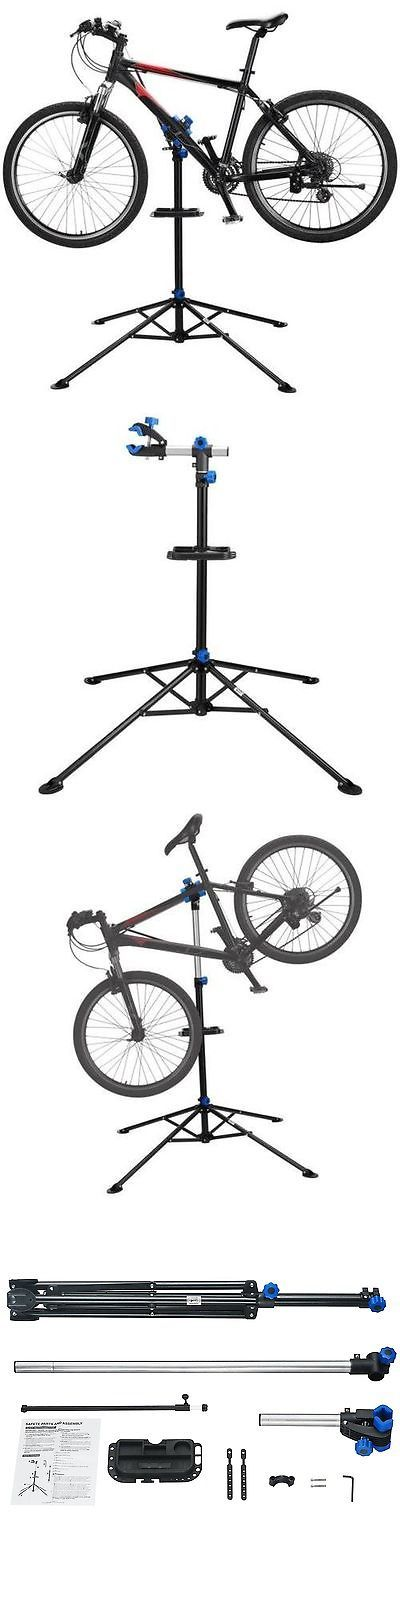 Workstands 177847: Mountain Bike Repair Stand Clamp Road Adjustable Mechanic Bicycle Cycle Holder -> BUY IT NOW ONLY: $82.99 on eBay!